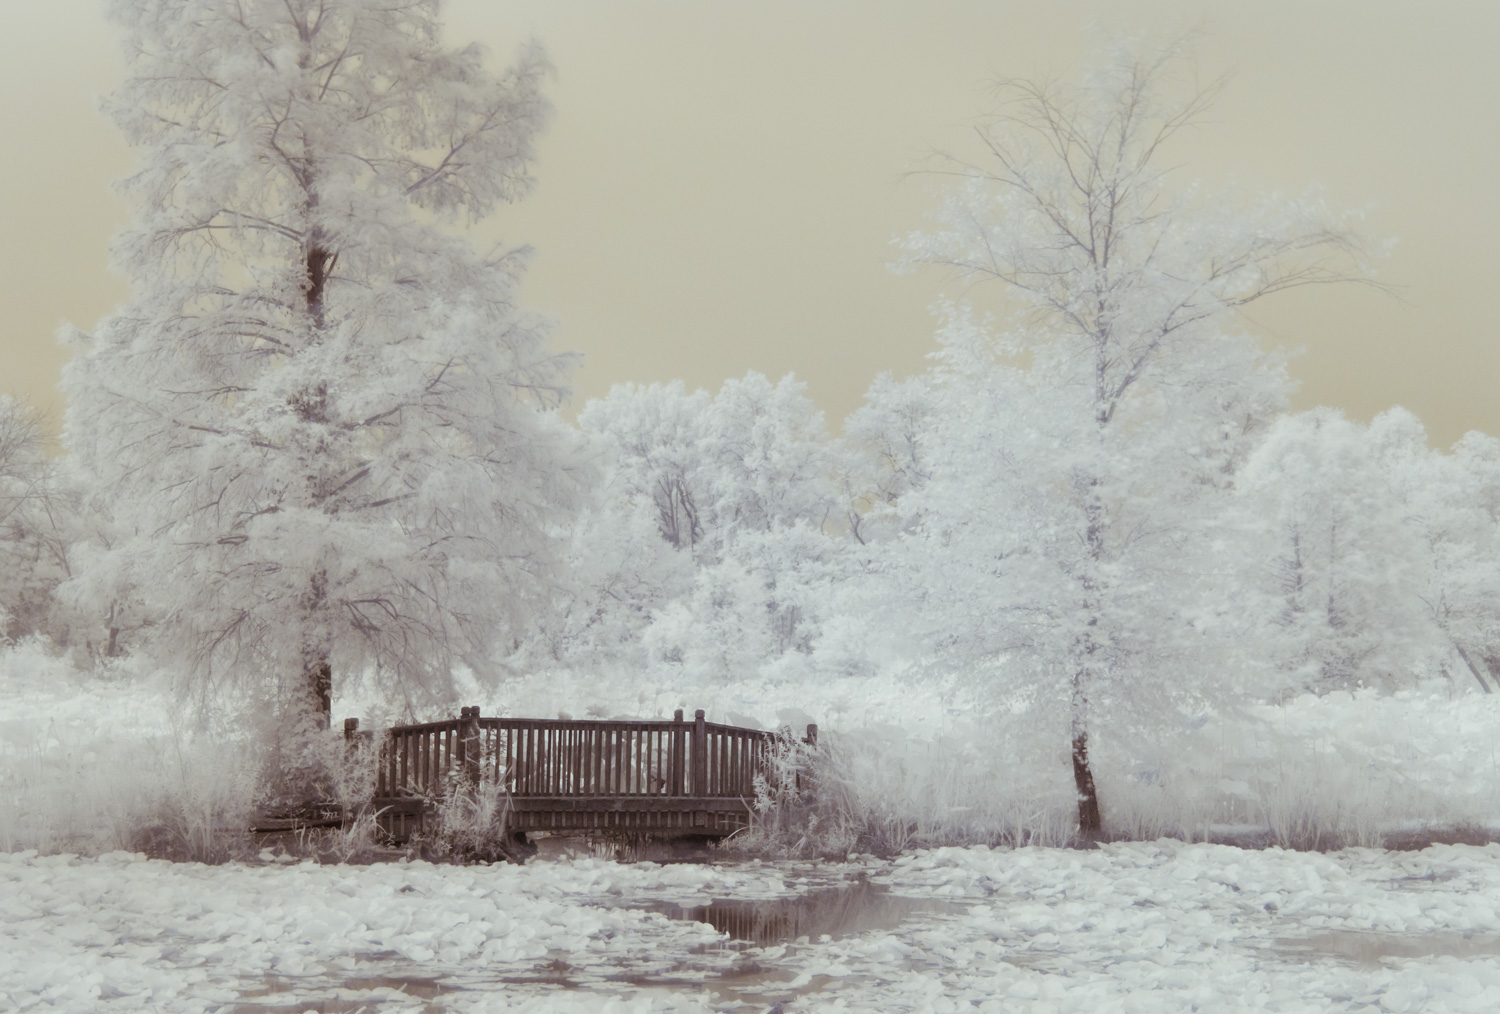 Kenilworth Aquatic Gardens Bridge in Infrared